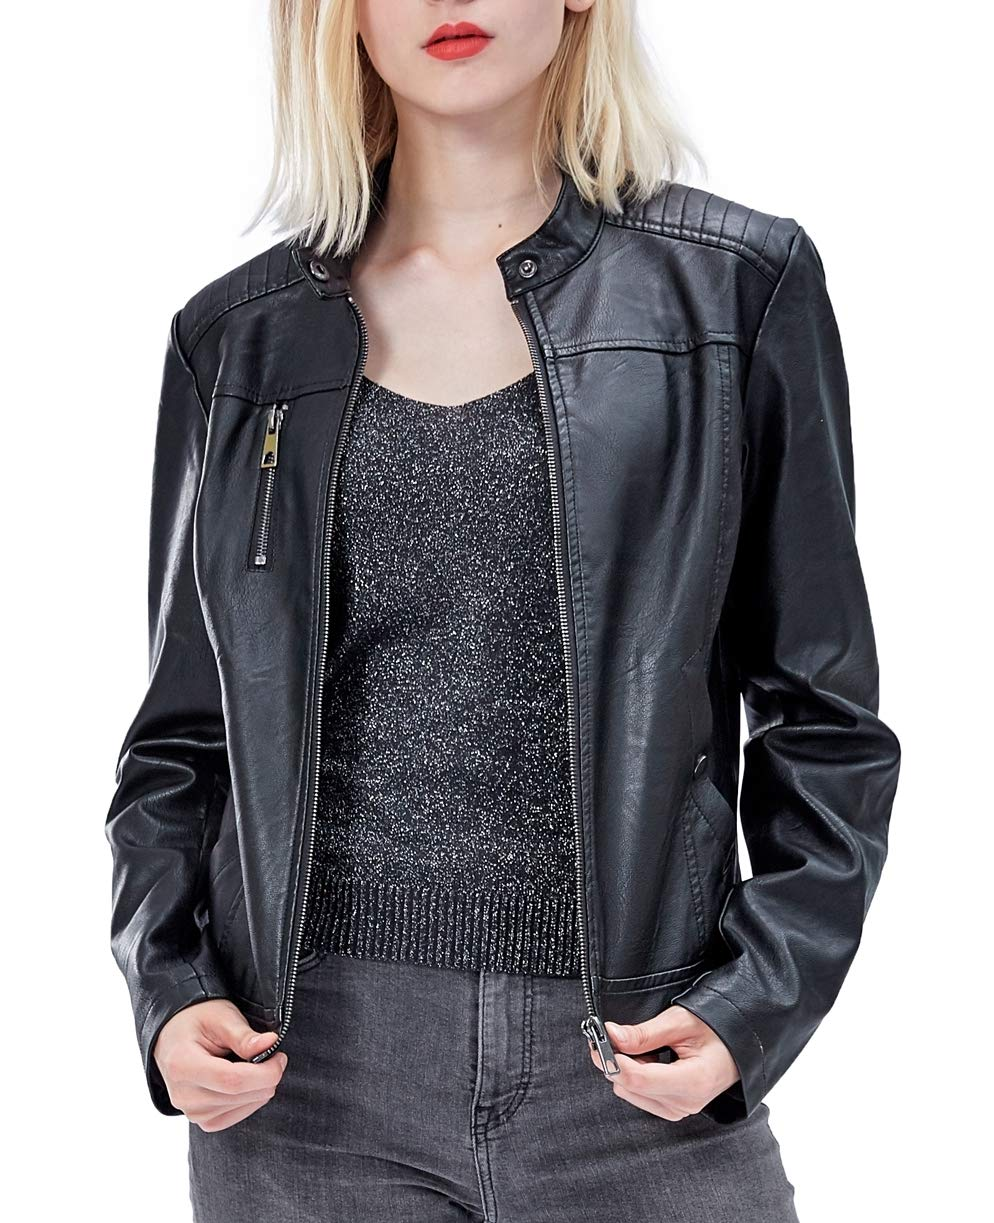 5f5a03e15 Best Rated in Women's Leather & Faux Leather Jackets & Coats ...